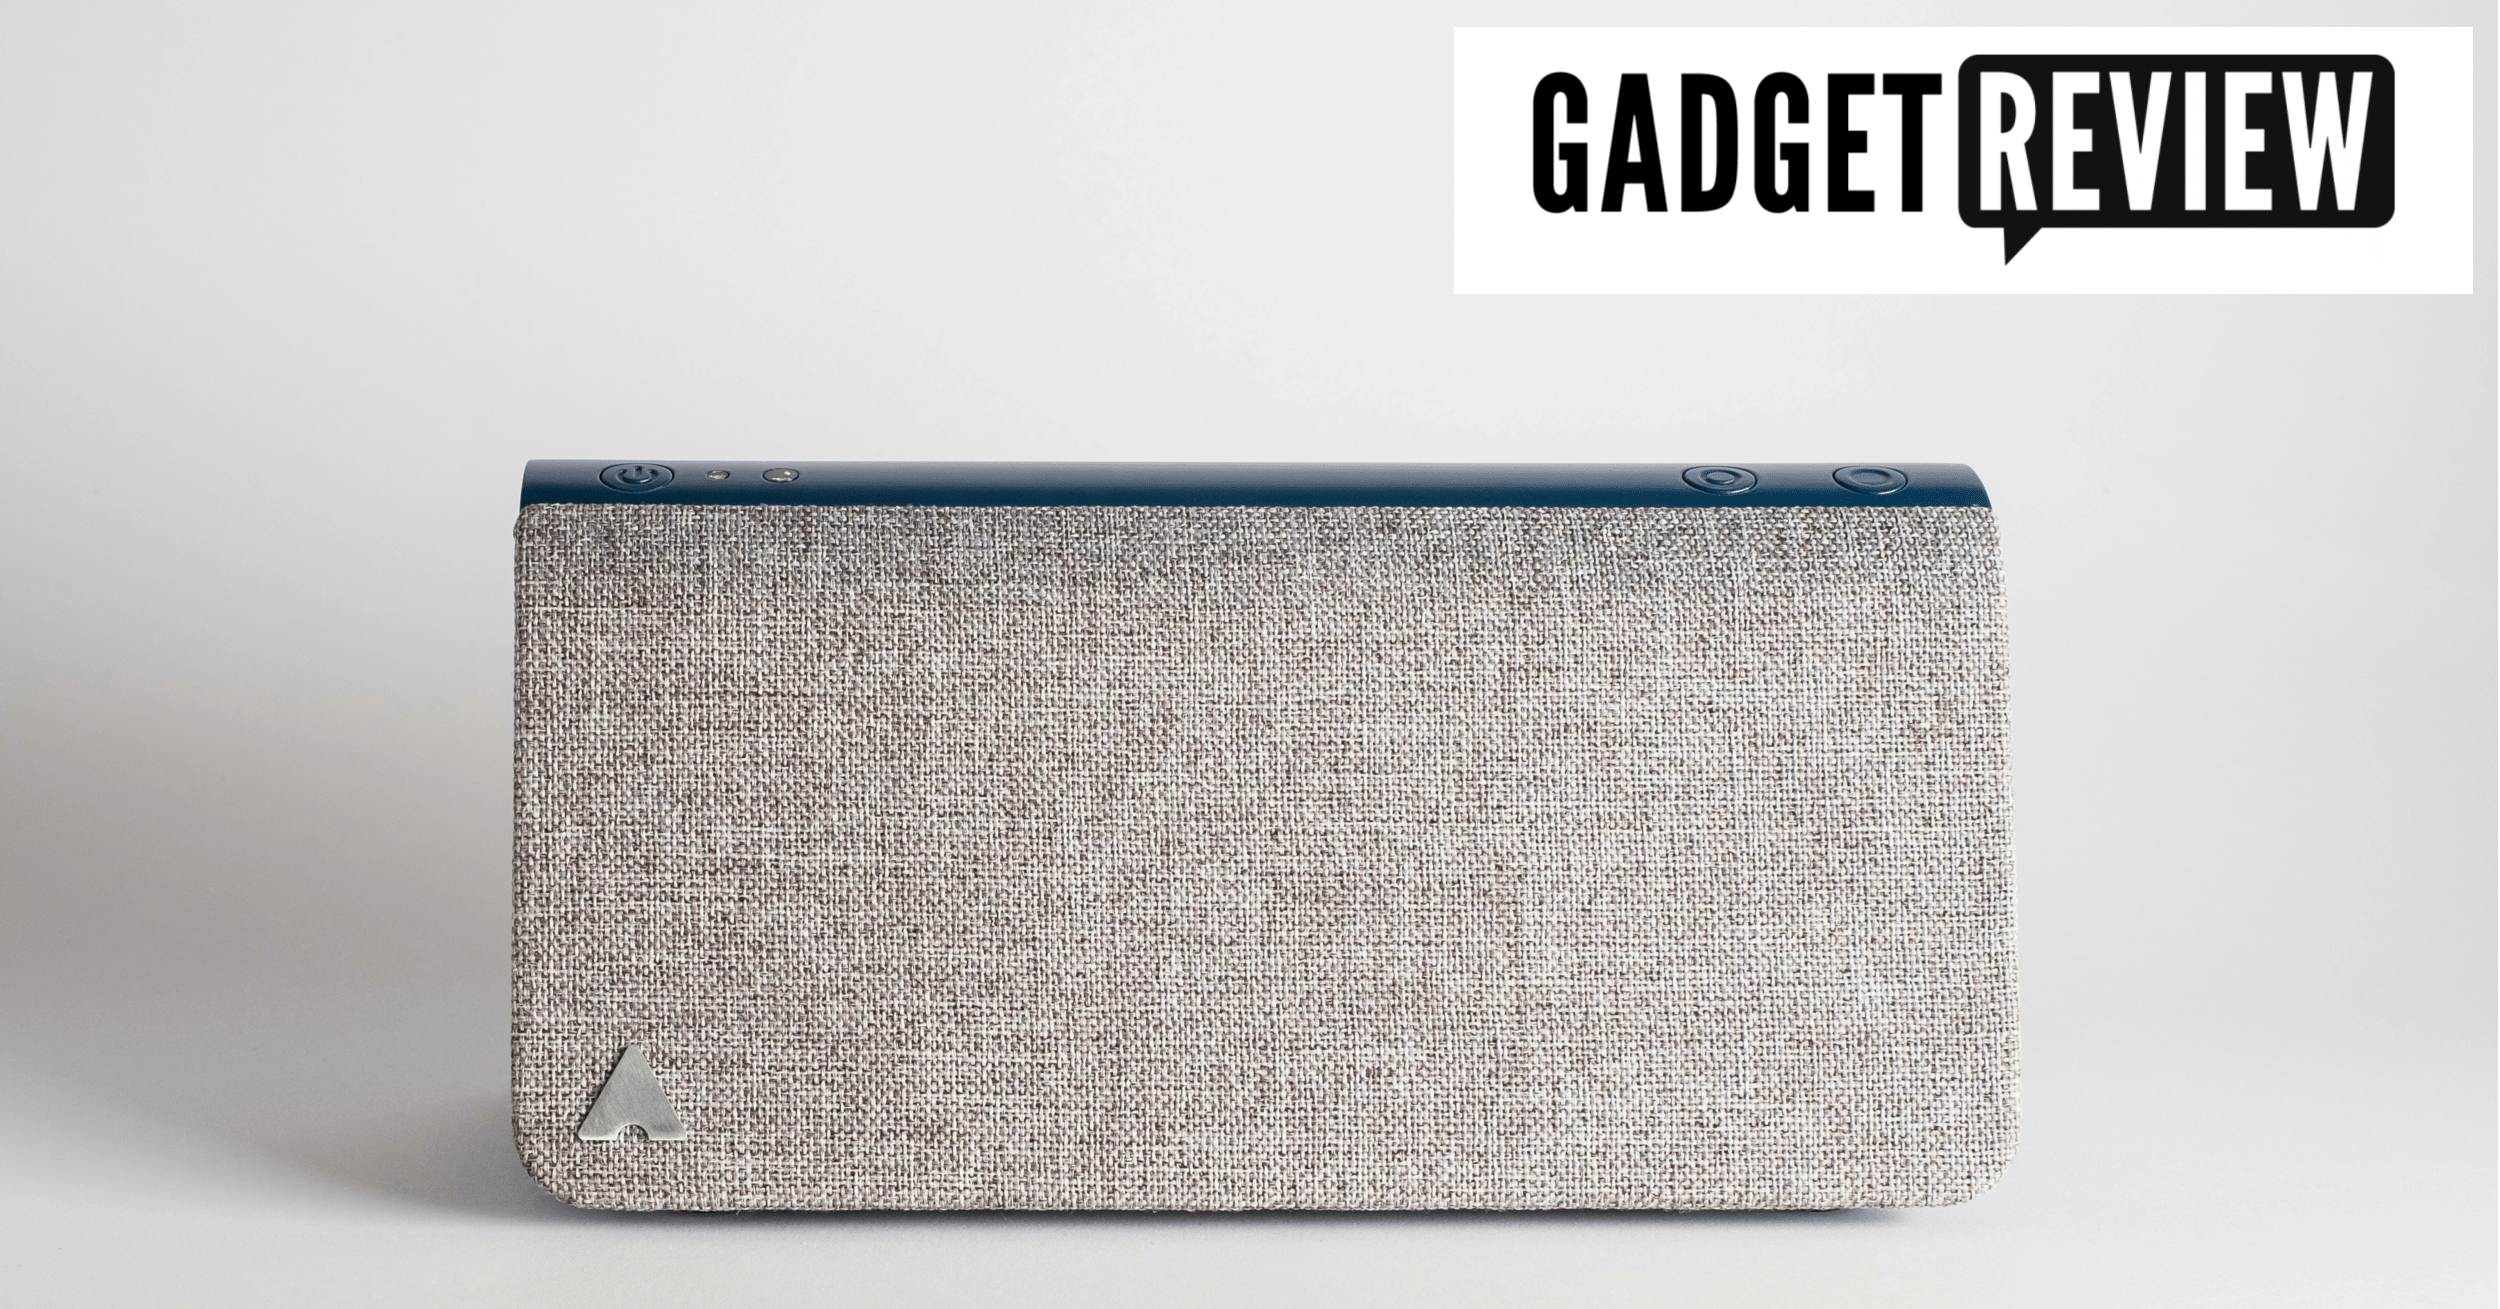 """""""Meet your new roommate"""" - Kevin on gadgetreview.com"""